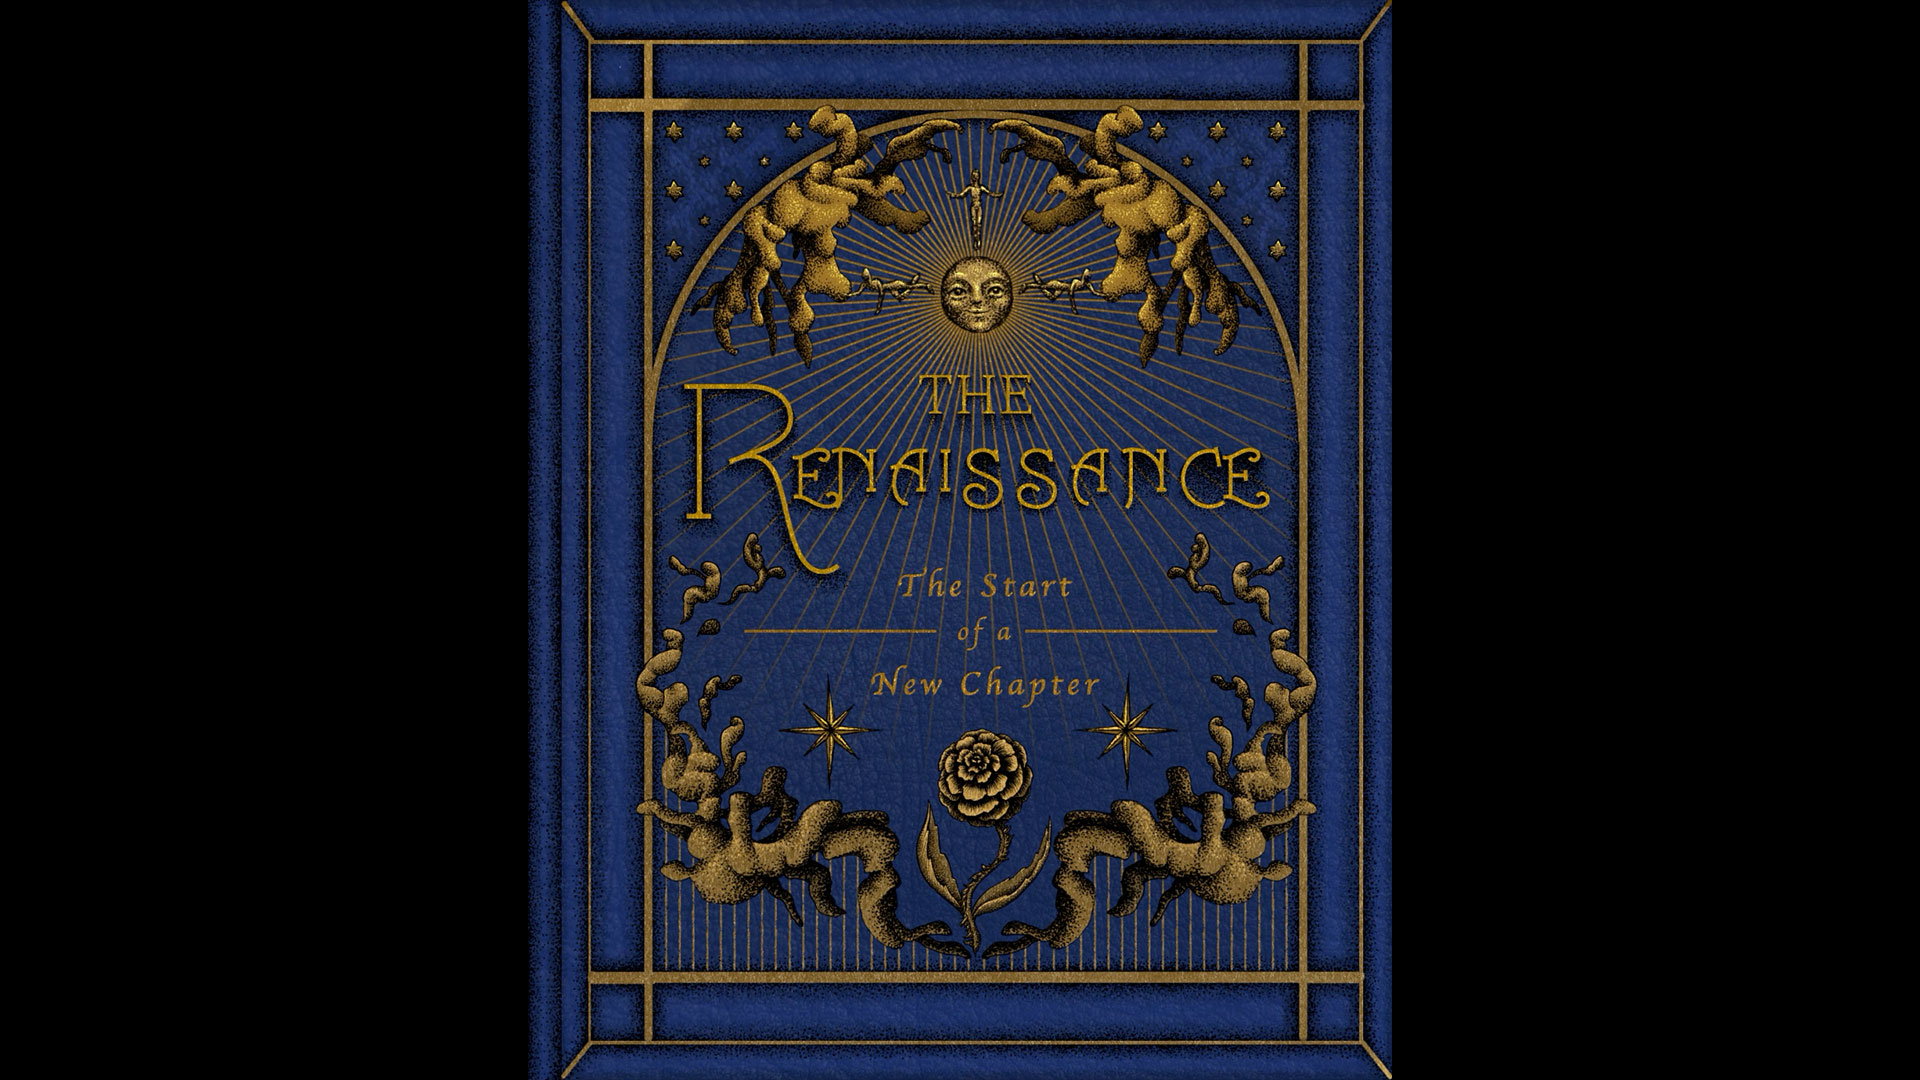 SUPER JUNIOR The 10th Album 'The Renaissance' Story Teaser : The Start of a New Chapter